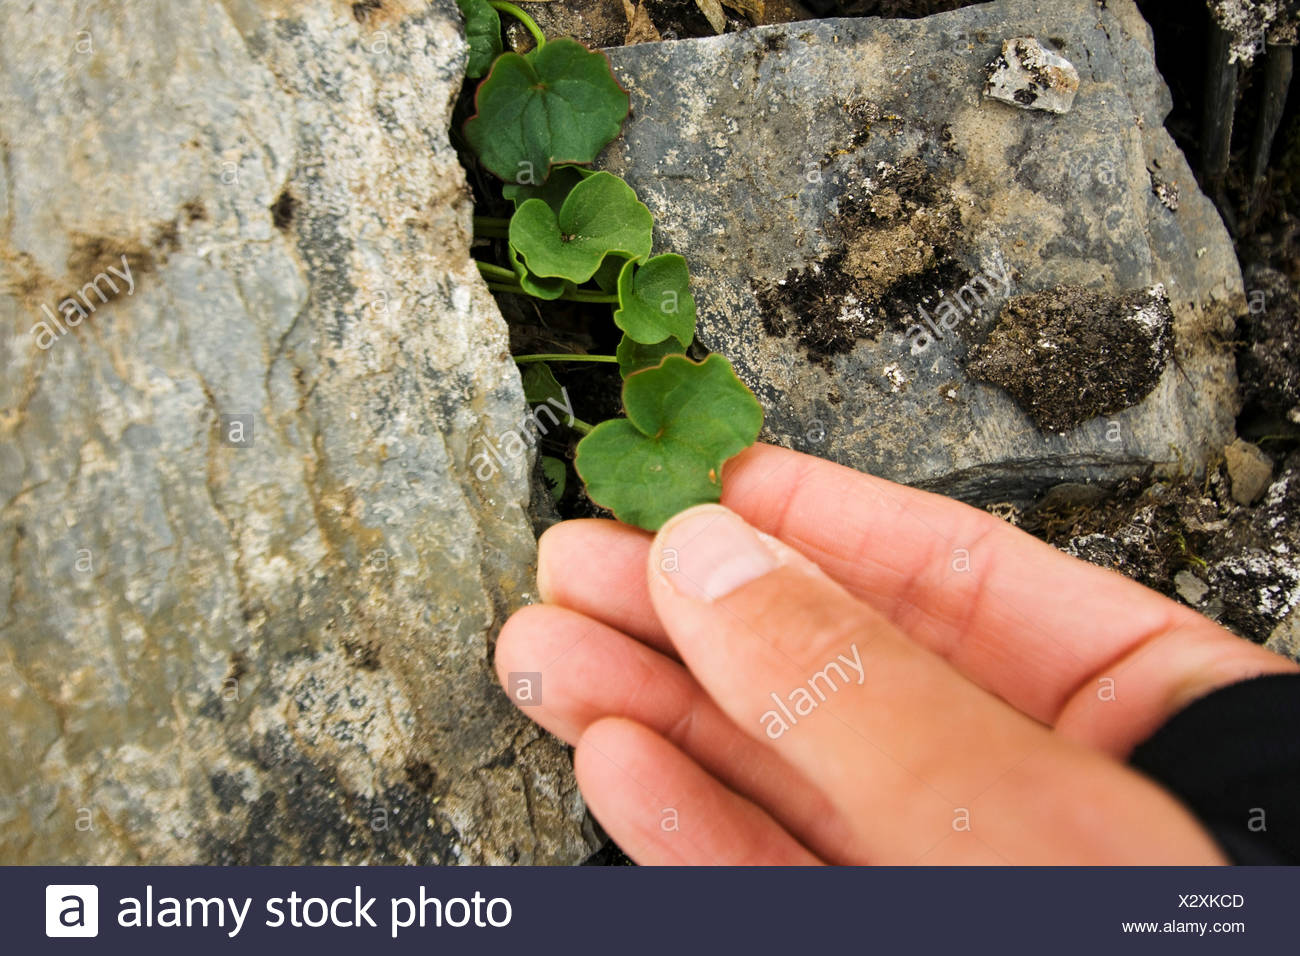 Delicate unidentified plant growing from between rocks on the tundra, St. Jonsfjord, west coast of Svalbard, Norway. - Stock Image